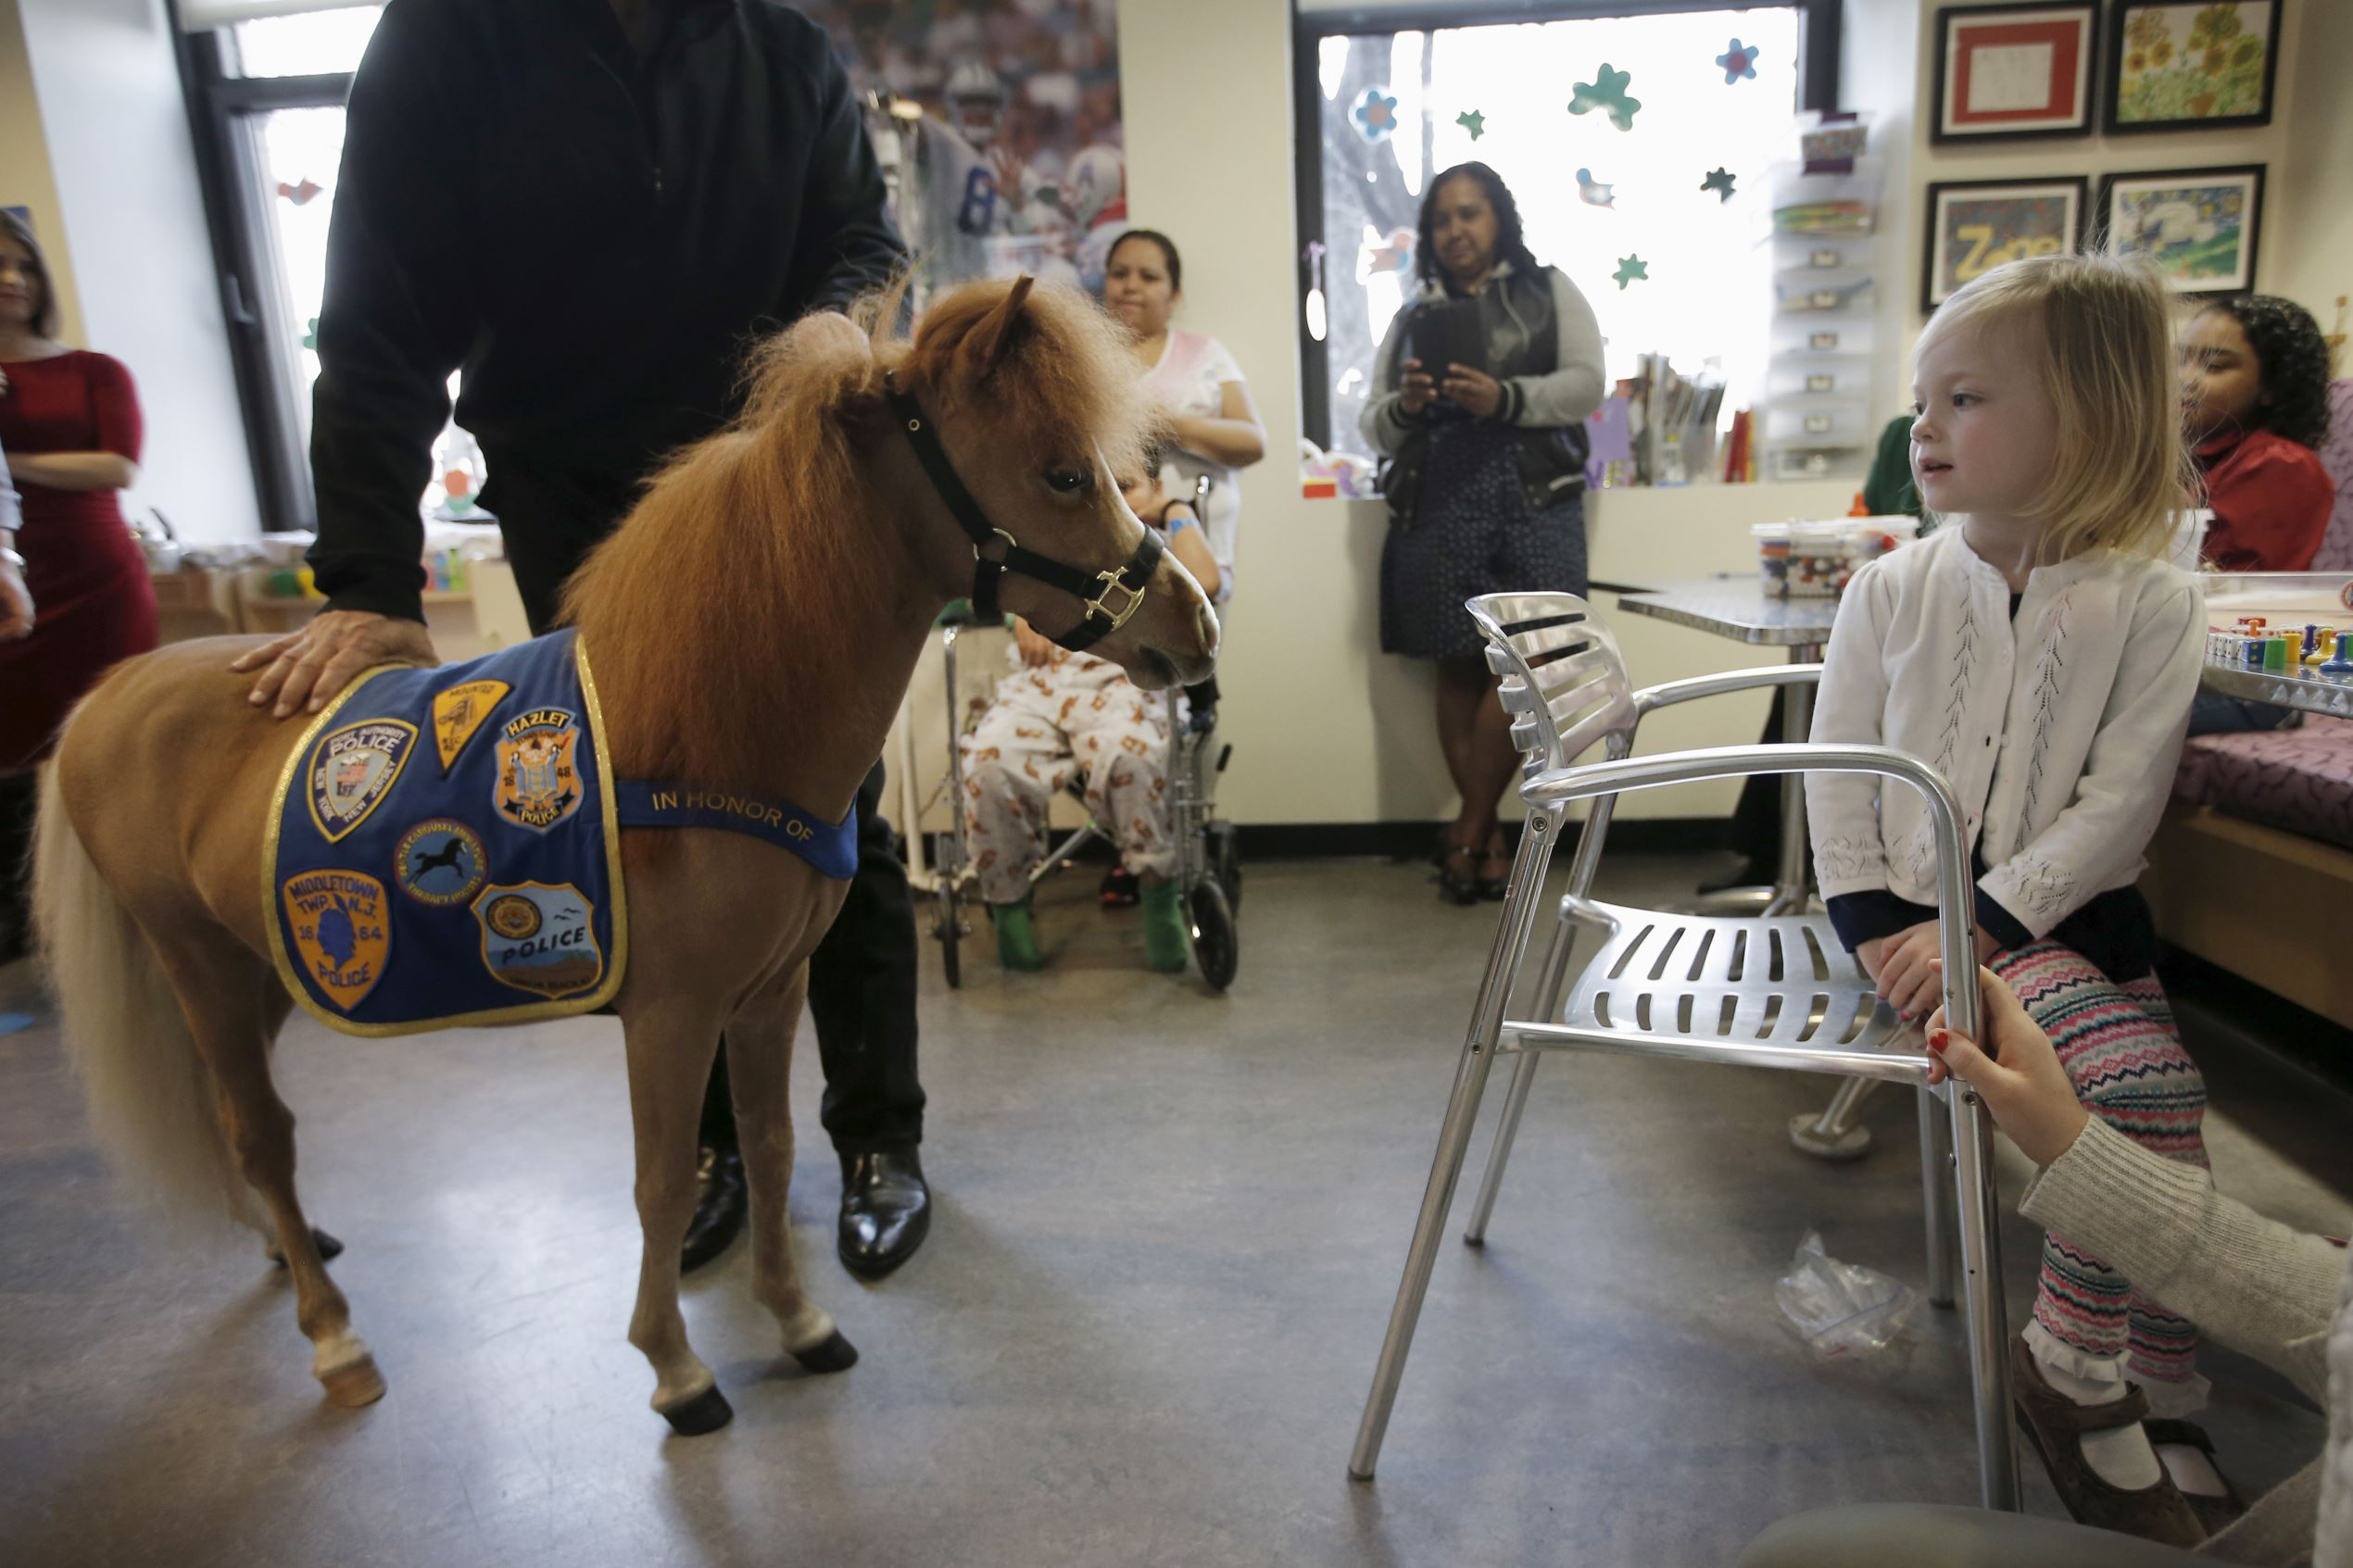 Слайд 49 из 67: Handler Jorge Garcia-Bengochea holds Honor, a miniature therapy horse from Gentle Carousel Miniature Therapy Horses, as they visit with patients at the Kravis Children's Hospital at Mount Sinai in the Manhattan borough of New York City, March 16, 2016.